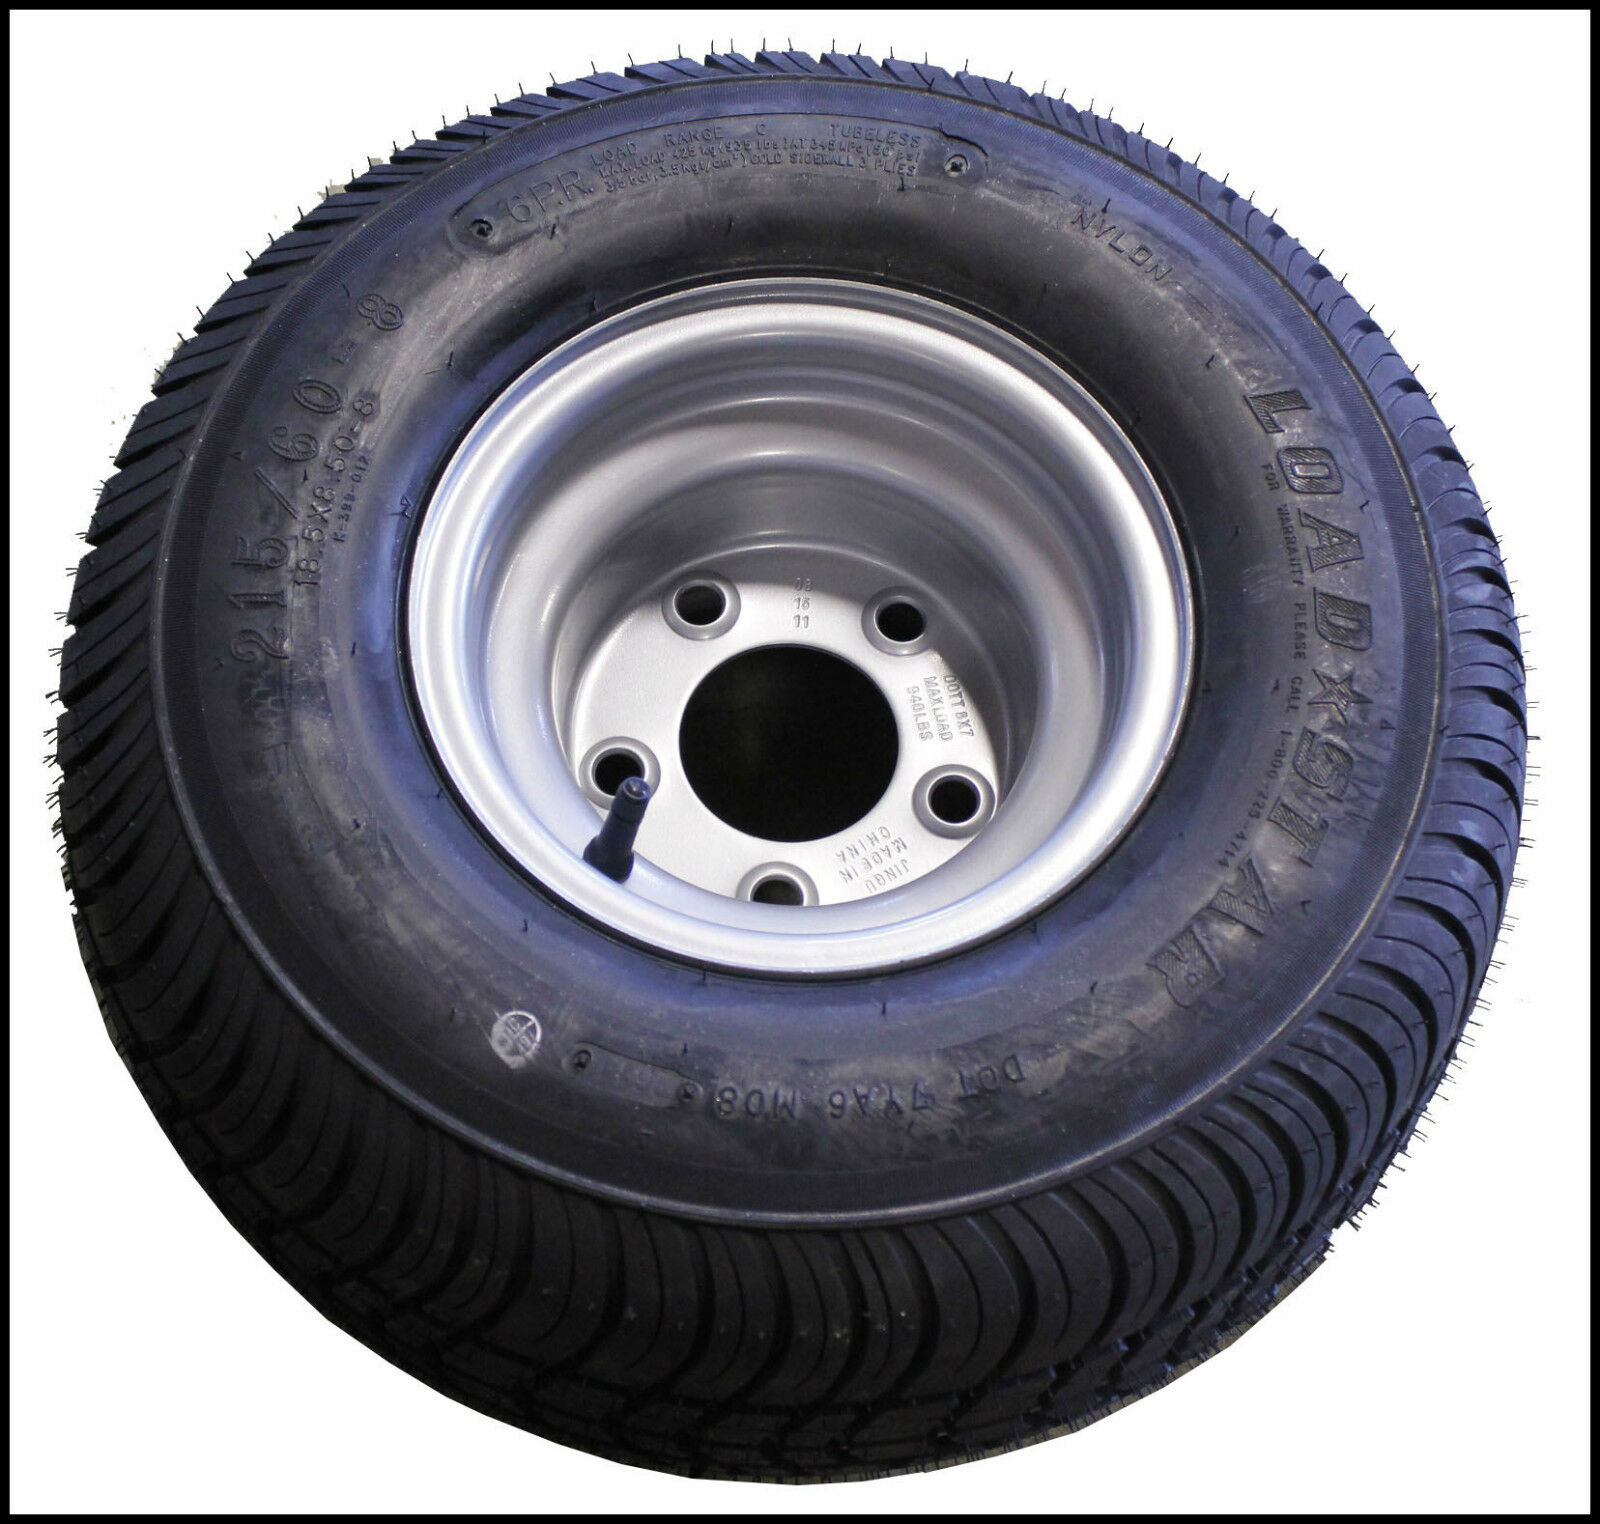 18.5 X 8.50-8 (215/60-8) Triton 02435 Class C Snowmobile Trailer Tire - Single